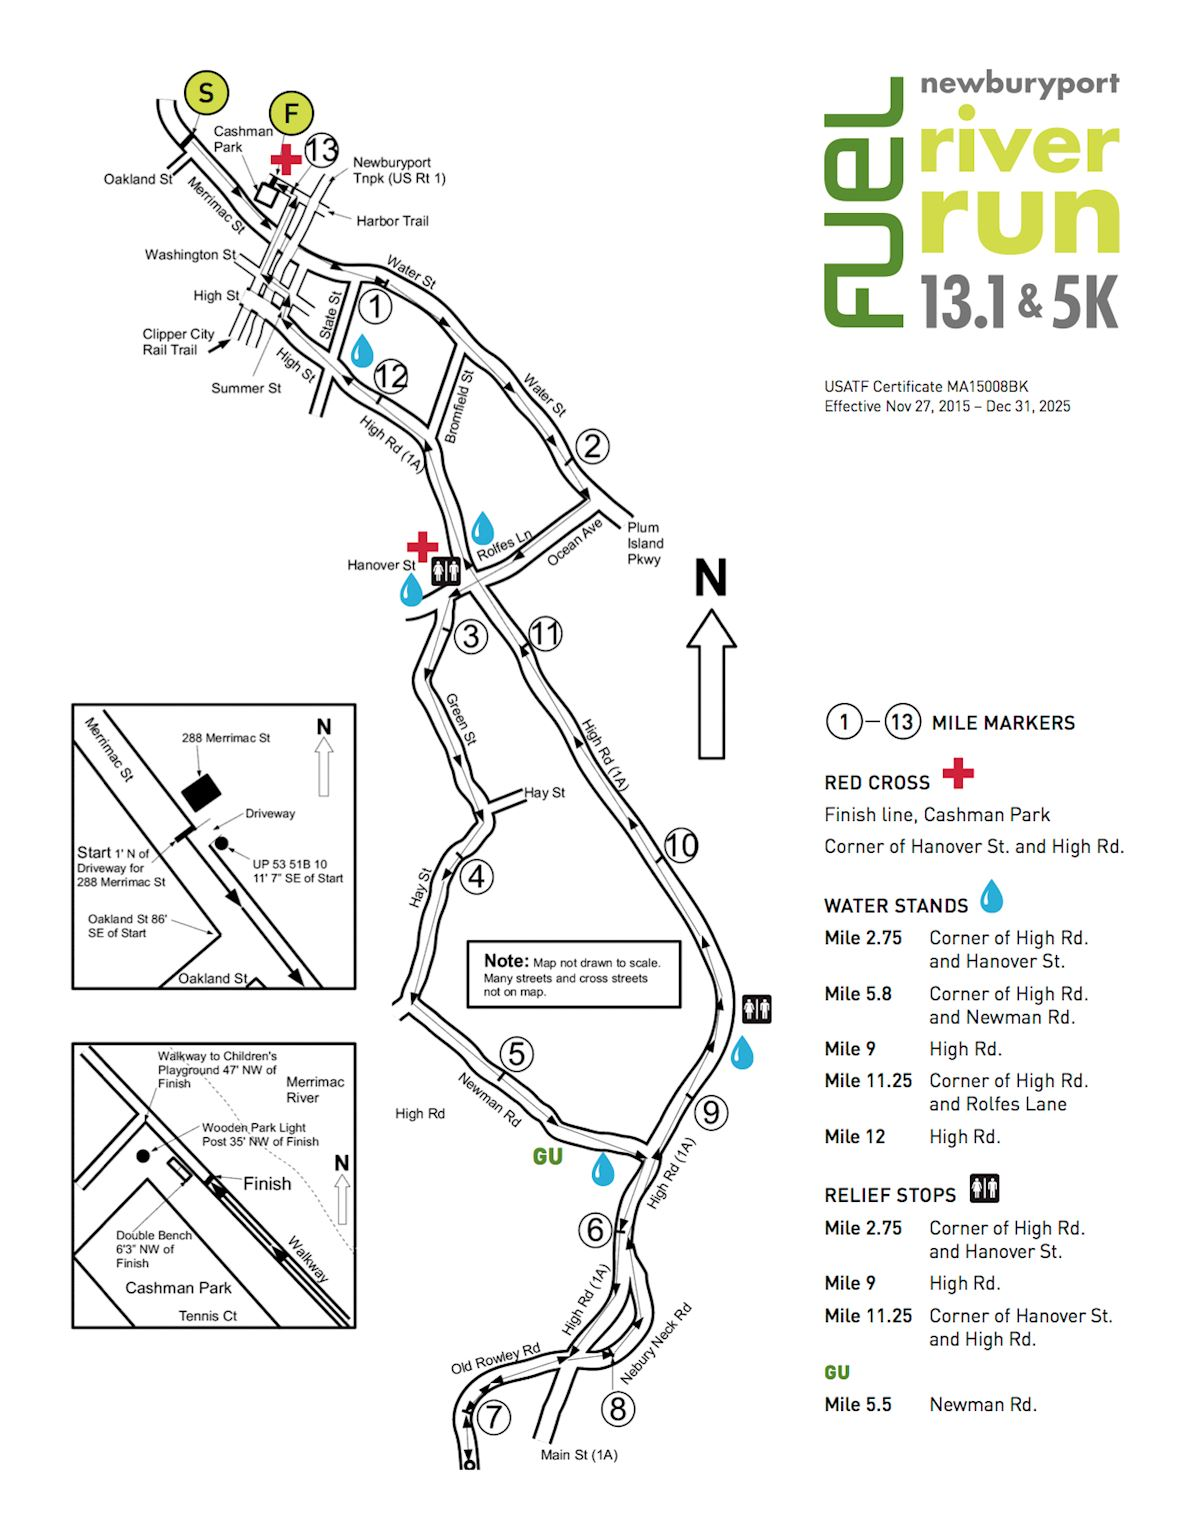 Newburyport River Run Half Marathon 路线图